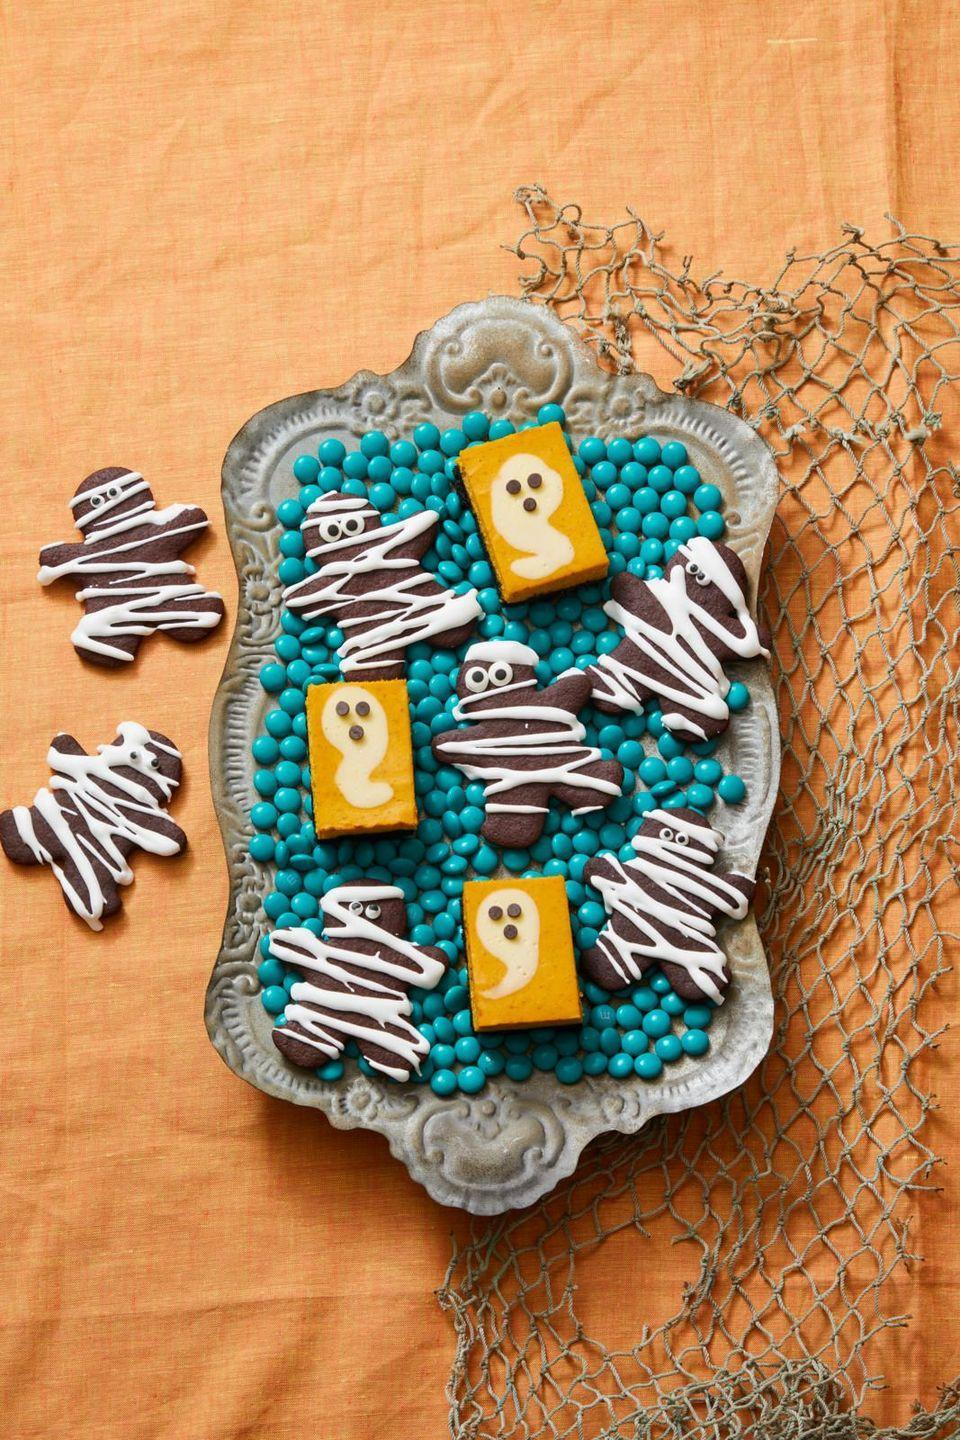 """<p>Bust out your gingerbread man cutters a few months early to make these mouth-watering cookies. Dutch processed cocoa powder is the key to the color and flavor, so make sure to check the label.</p><p><strong><em><a href=""""https://www.womansday.com/food-recipes/a33563511/double-chocolate-mummies-recipe/"""" rel=""""nofollow noopener"""" target=""""_blank"""" data-ylk=""""slk:Get the Double Chocolate Mummies recipe."""" class=""""link rapid-noclick-resp"""">Get the Double Chocolate Mummies recipe.</a></em></strong></p>"""